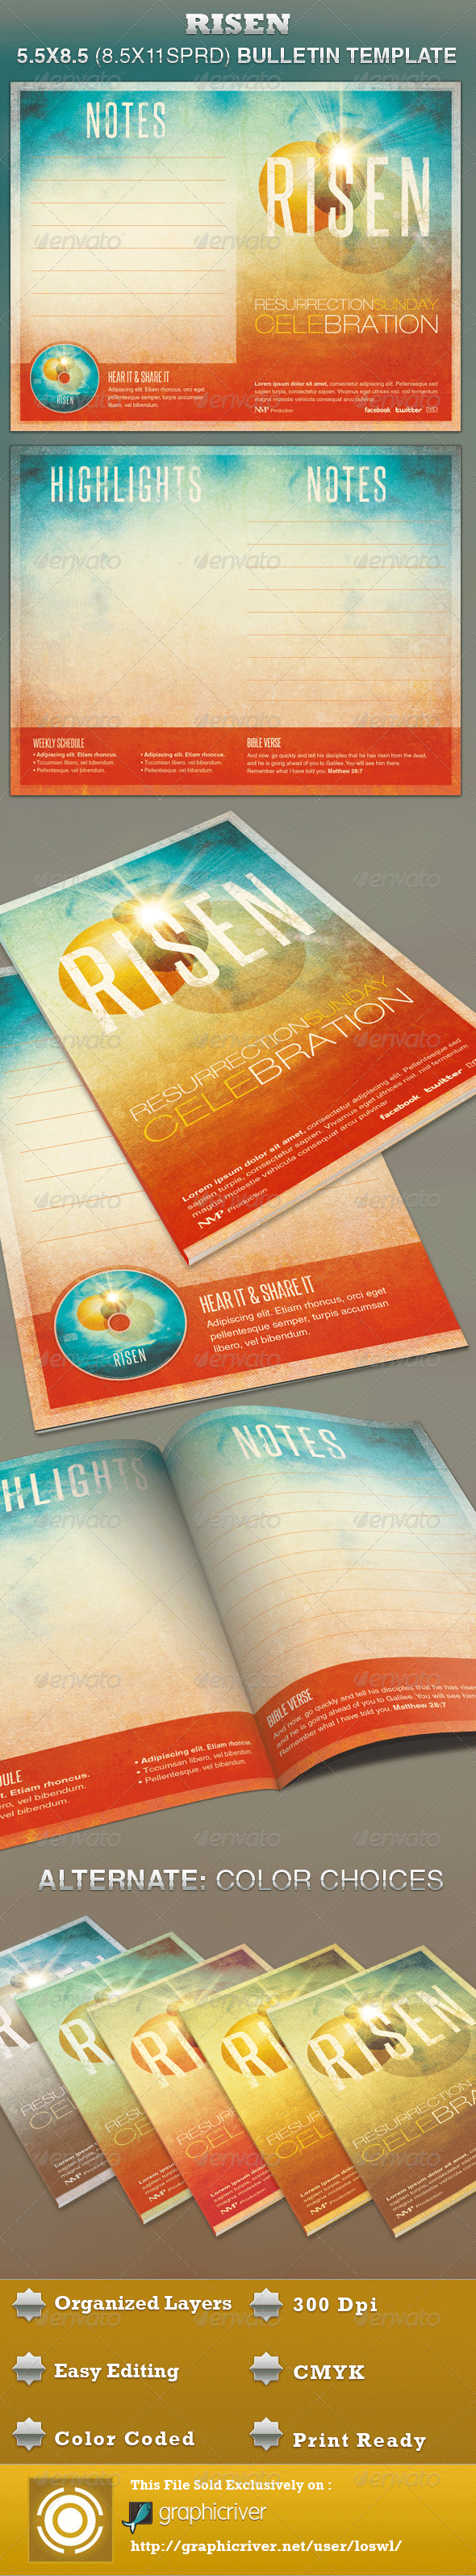 Risen Church Bulletin Template - Informational Brochures